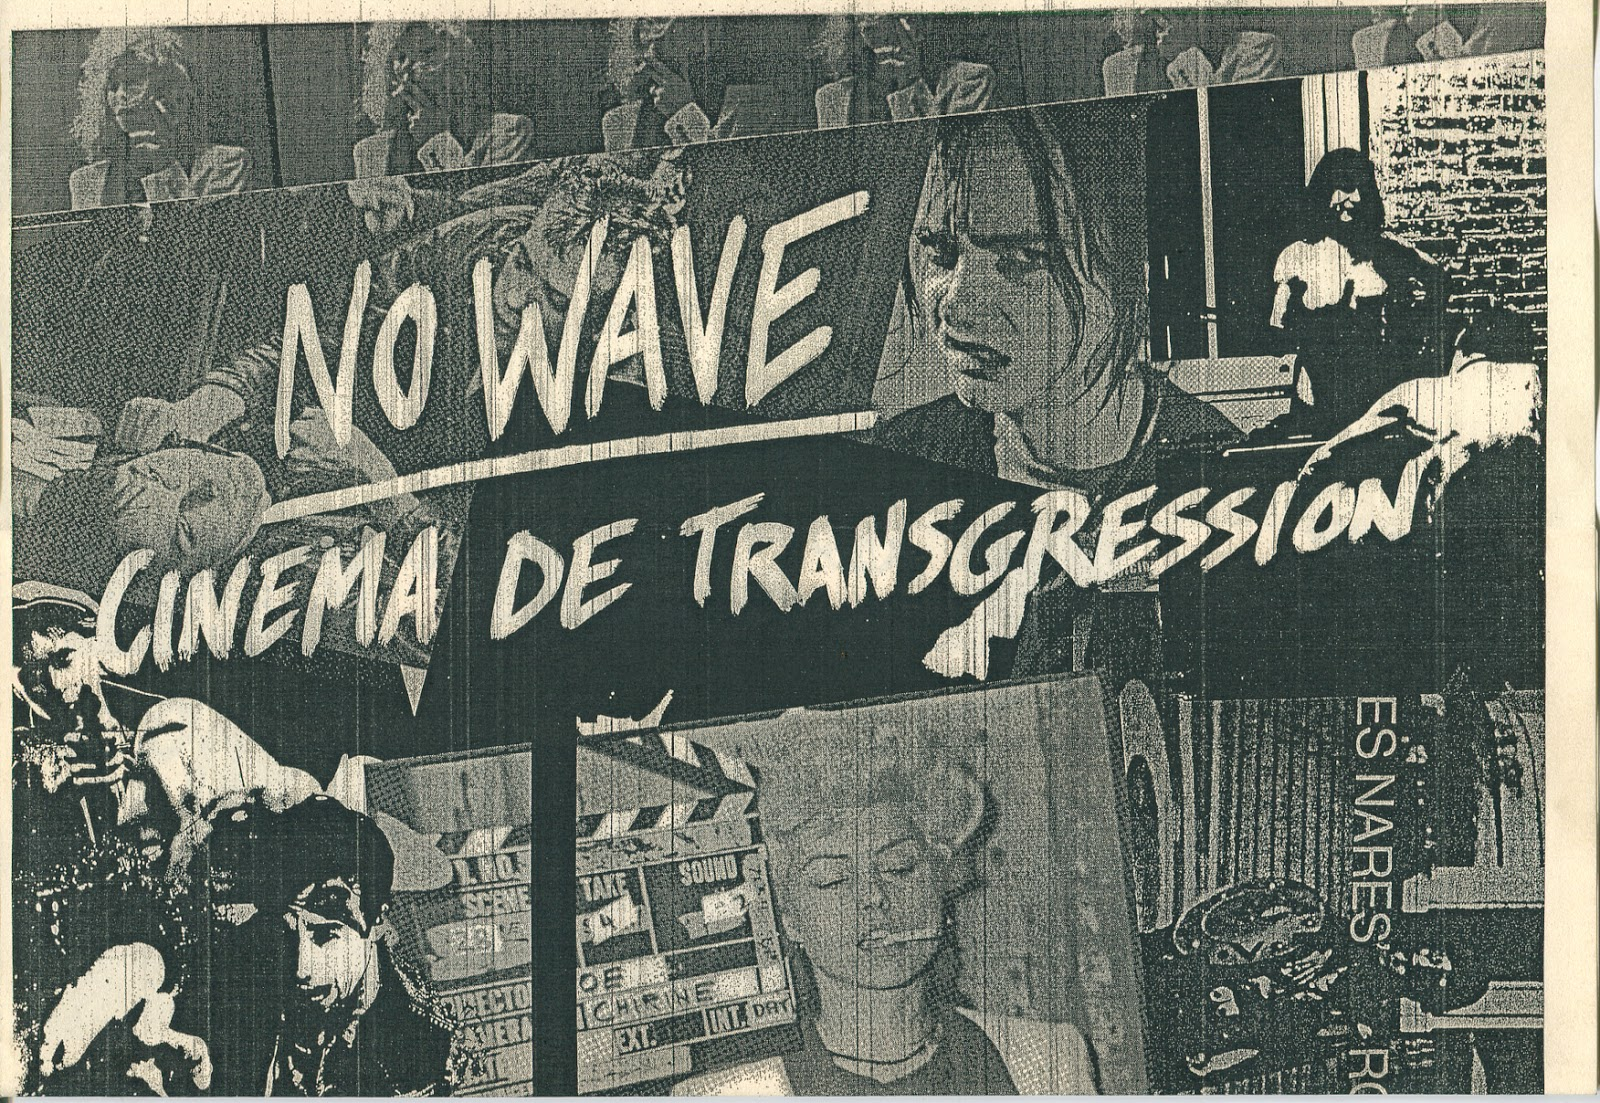 Films no wave & cinéma de transgression